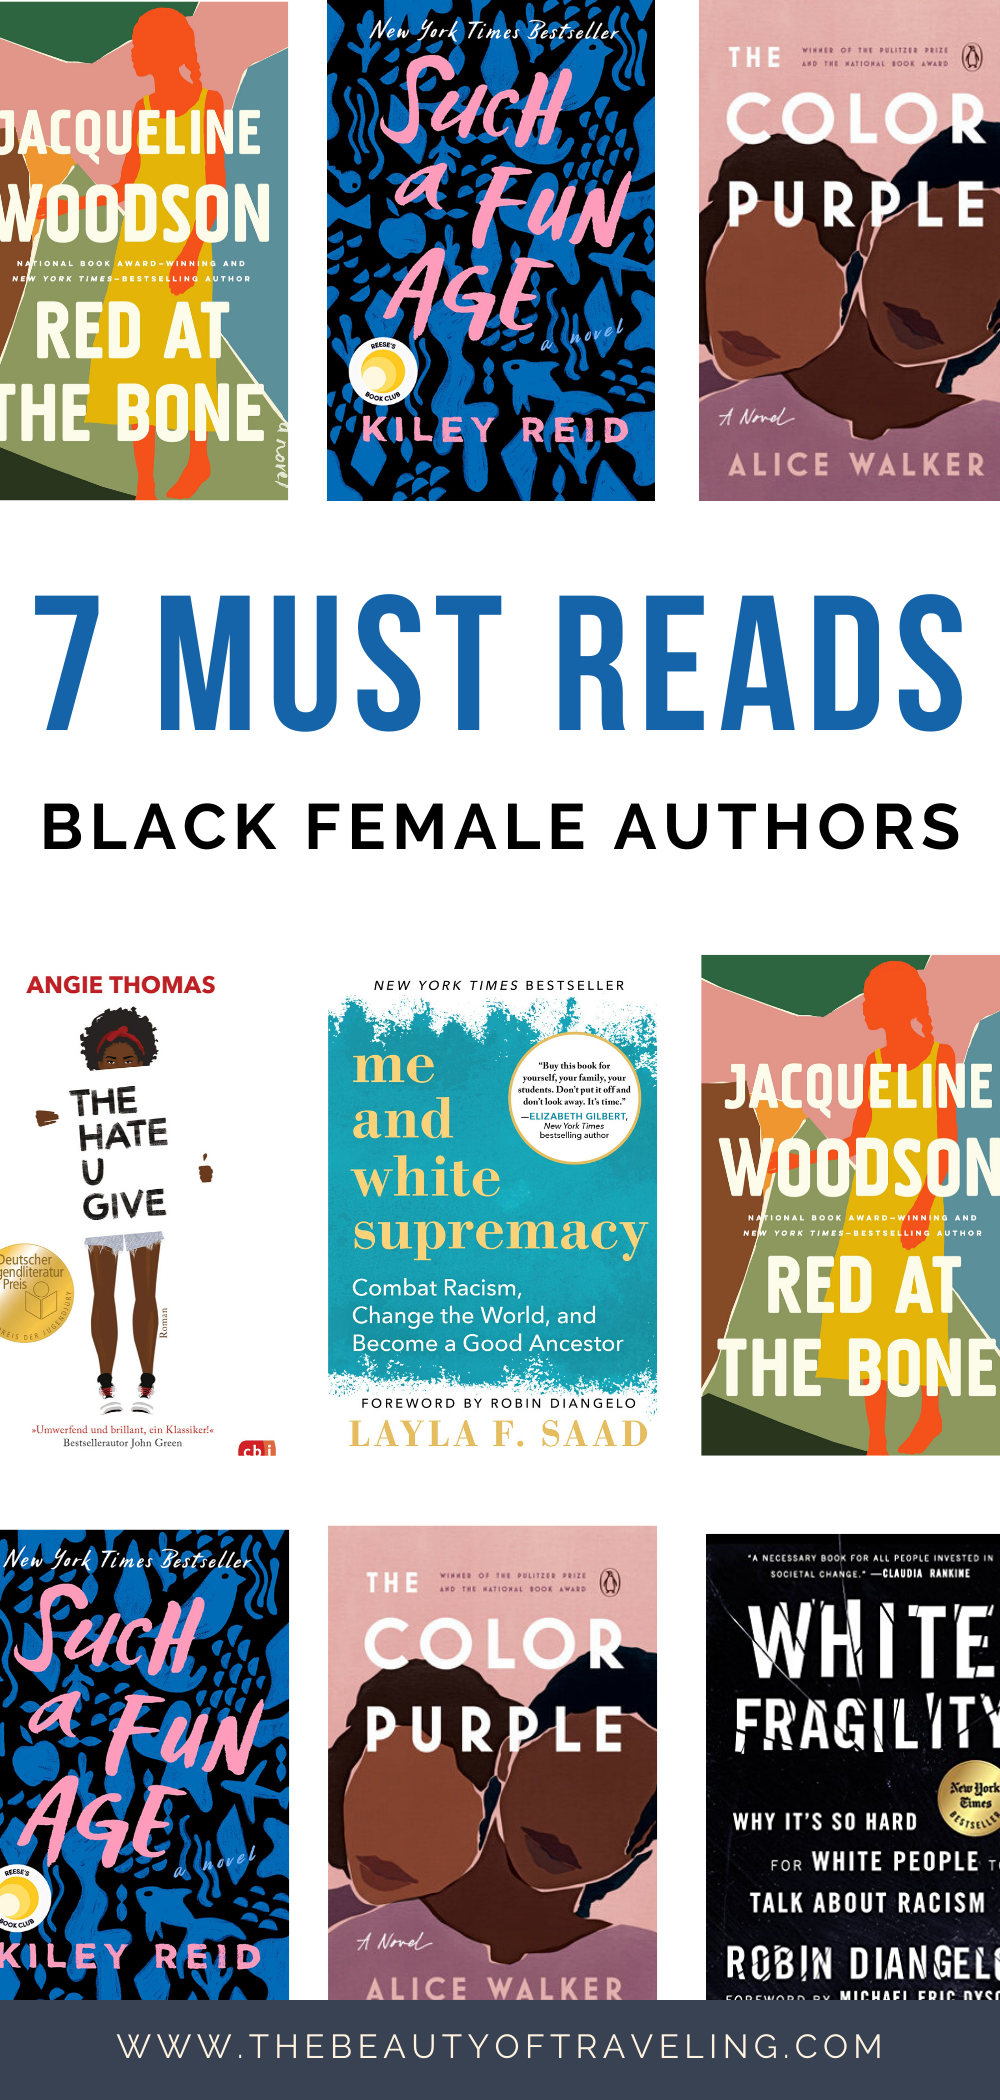 7 Book Recommendations On Racism Books By Black Female Authors Must Read Books By Black Women Book Club Books Empowering Books Books